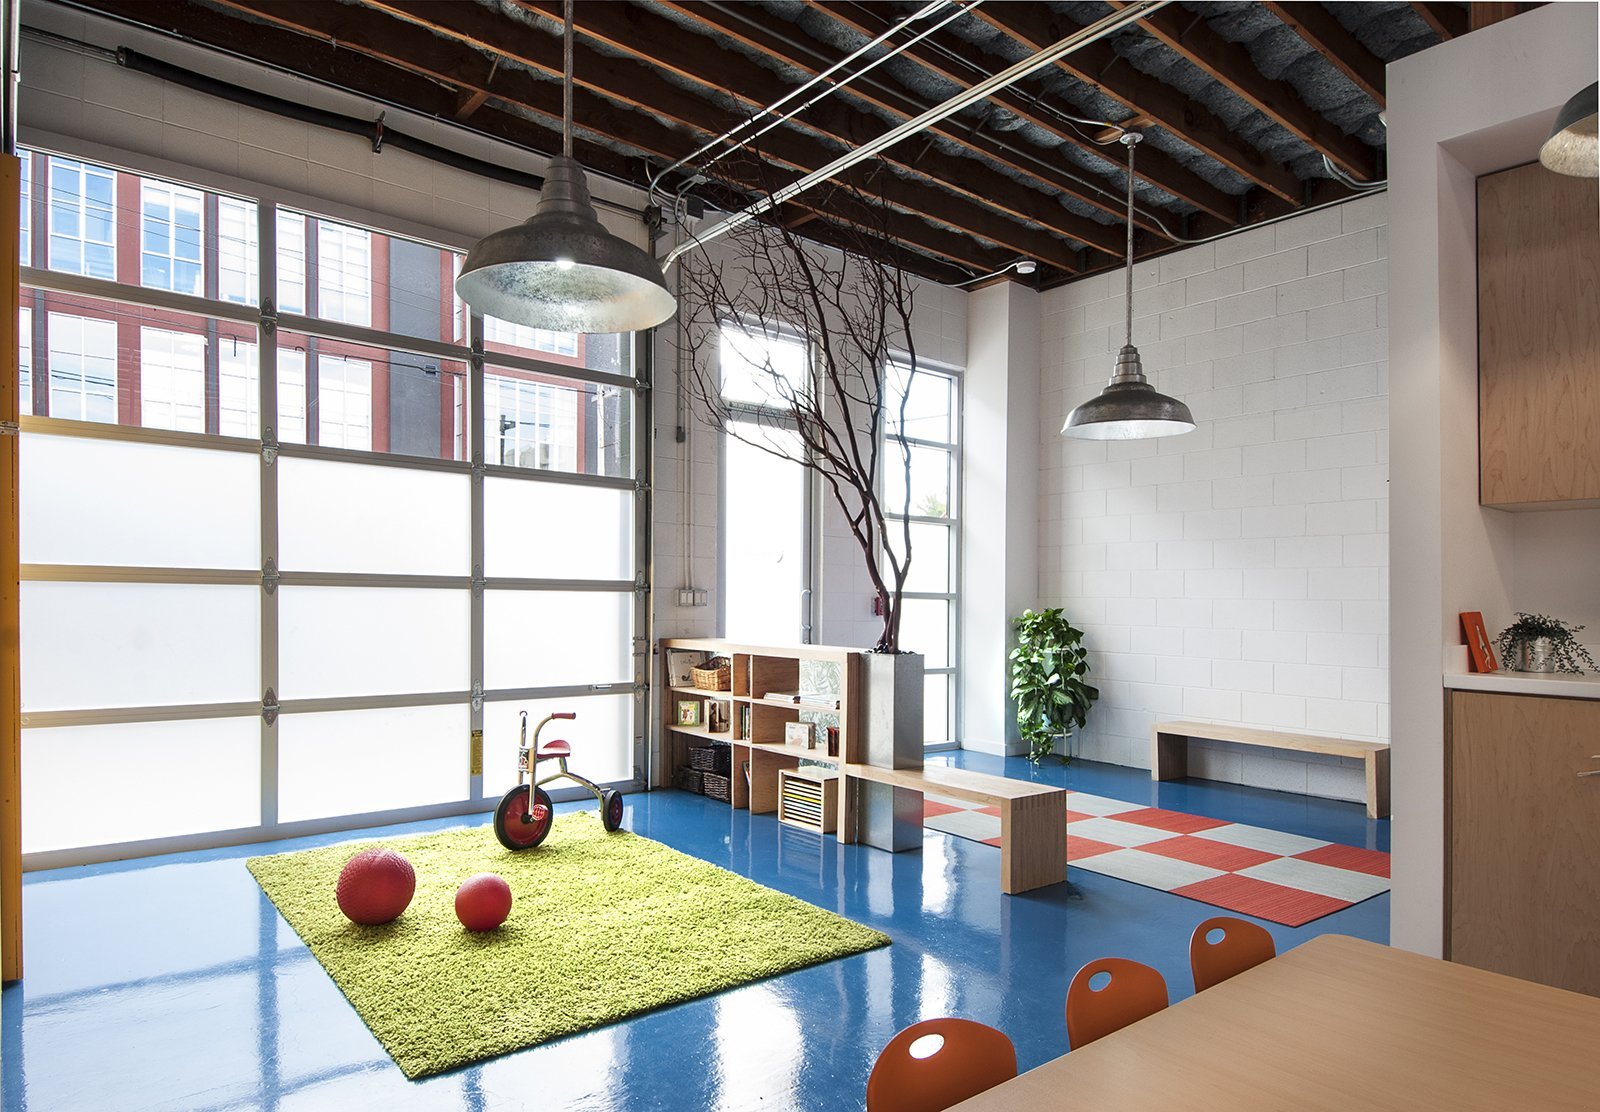 """Kids Room """"There is a triangle in projects between budget schedule and design,"""" Curtiss says. """"The common wisdom is you can hit any two but hitting all three is hard.  We tried to hit all three."""" The raw space featured concrete floors and since it was formerly industrial, had oil spills on the slab. To create a floor that was safe for the kids, Curtiss opted for an epoxy. """"Epoxy floors are used in hospitals and labs and are super easy to clean. We also knew it was an economical way to coat concrete."""" Custom colors are available, but for an extra charge. To rein in expenses, Curtiss chose a blue hue that's normally used for ADA striping.  Natural light floods the interior thanks to Solatubes. Barn lights from HiLite offer additional illumination. Curtiss left the Ultratouch blue denim insulation exposed in the ceiling. """"We asked the insulation supplier if we could check the denim batch colors,"""" she says. """"We didn't want black mixed in with the washed blue color. He thought we were crazy.""""  Photo 14 of 15 in Get Ready For July 4th With 15 Spaces That Rock Red, White, and Blue from A Modern Preschool in San Francisco"""